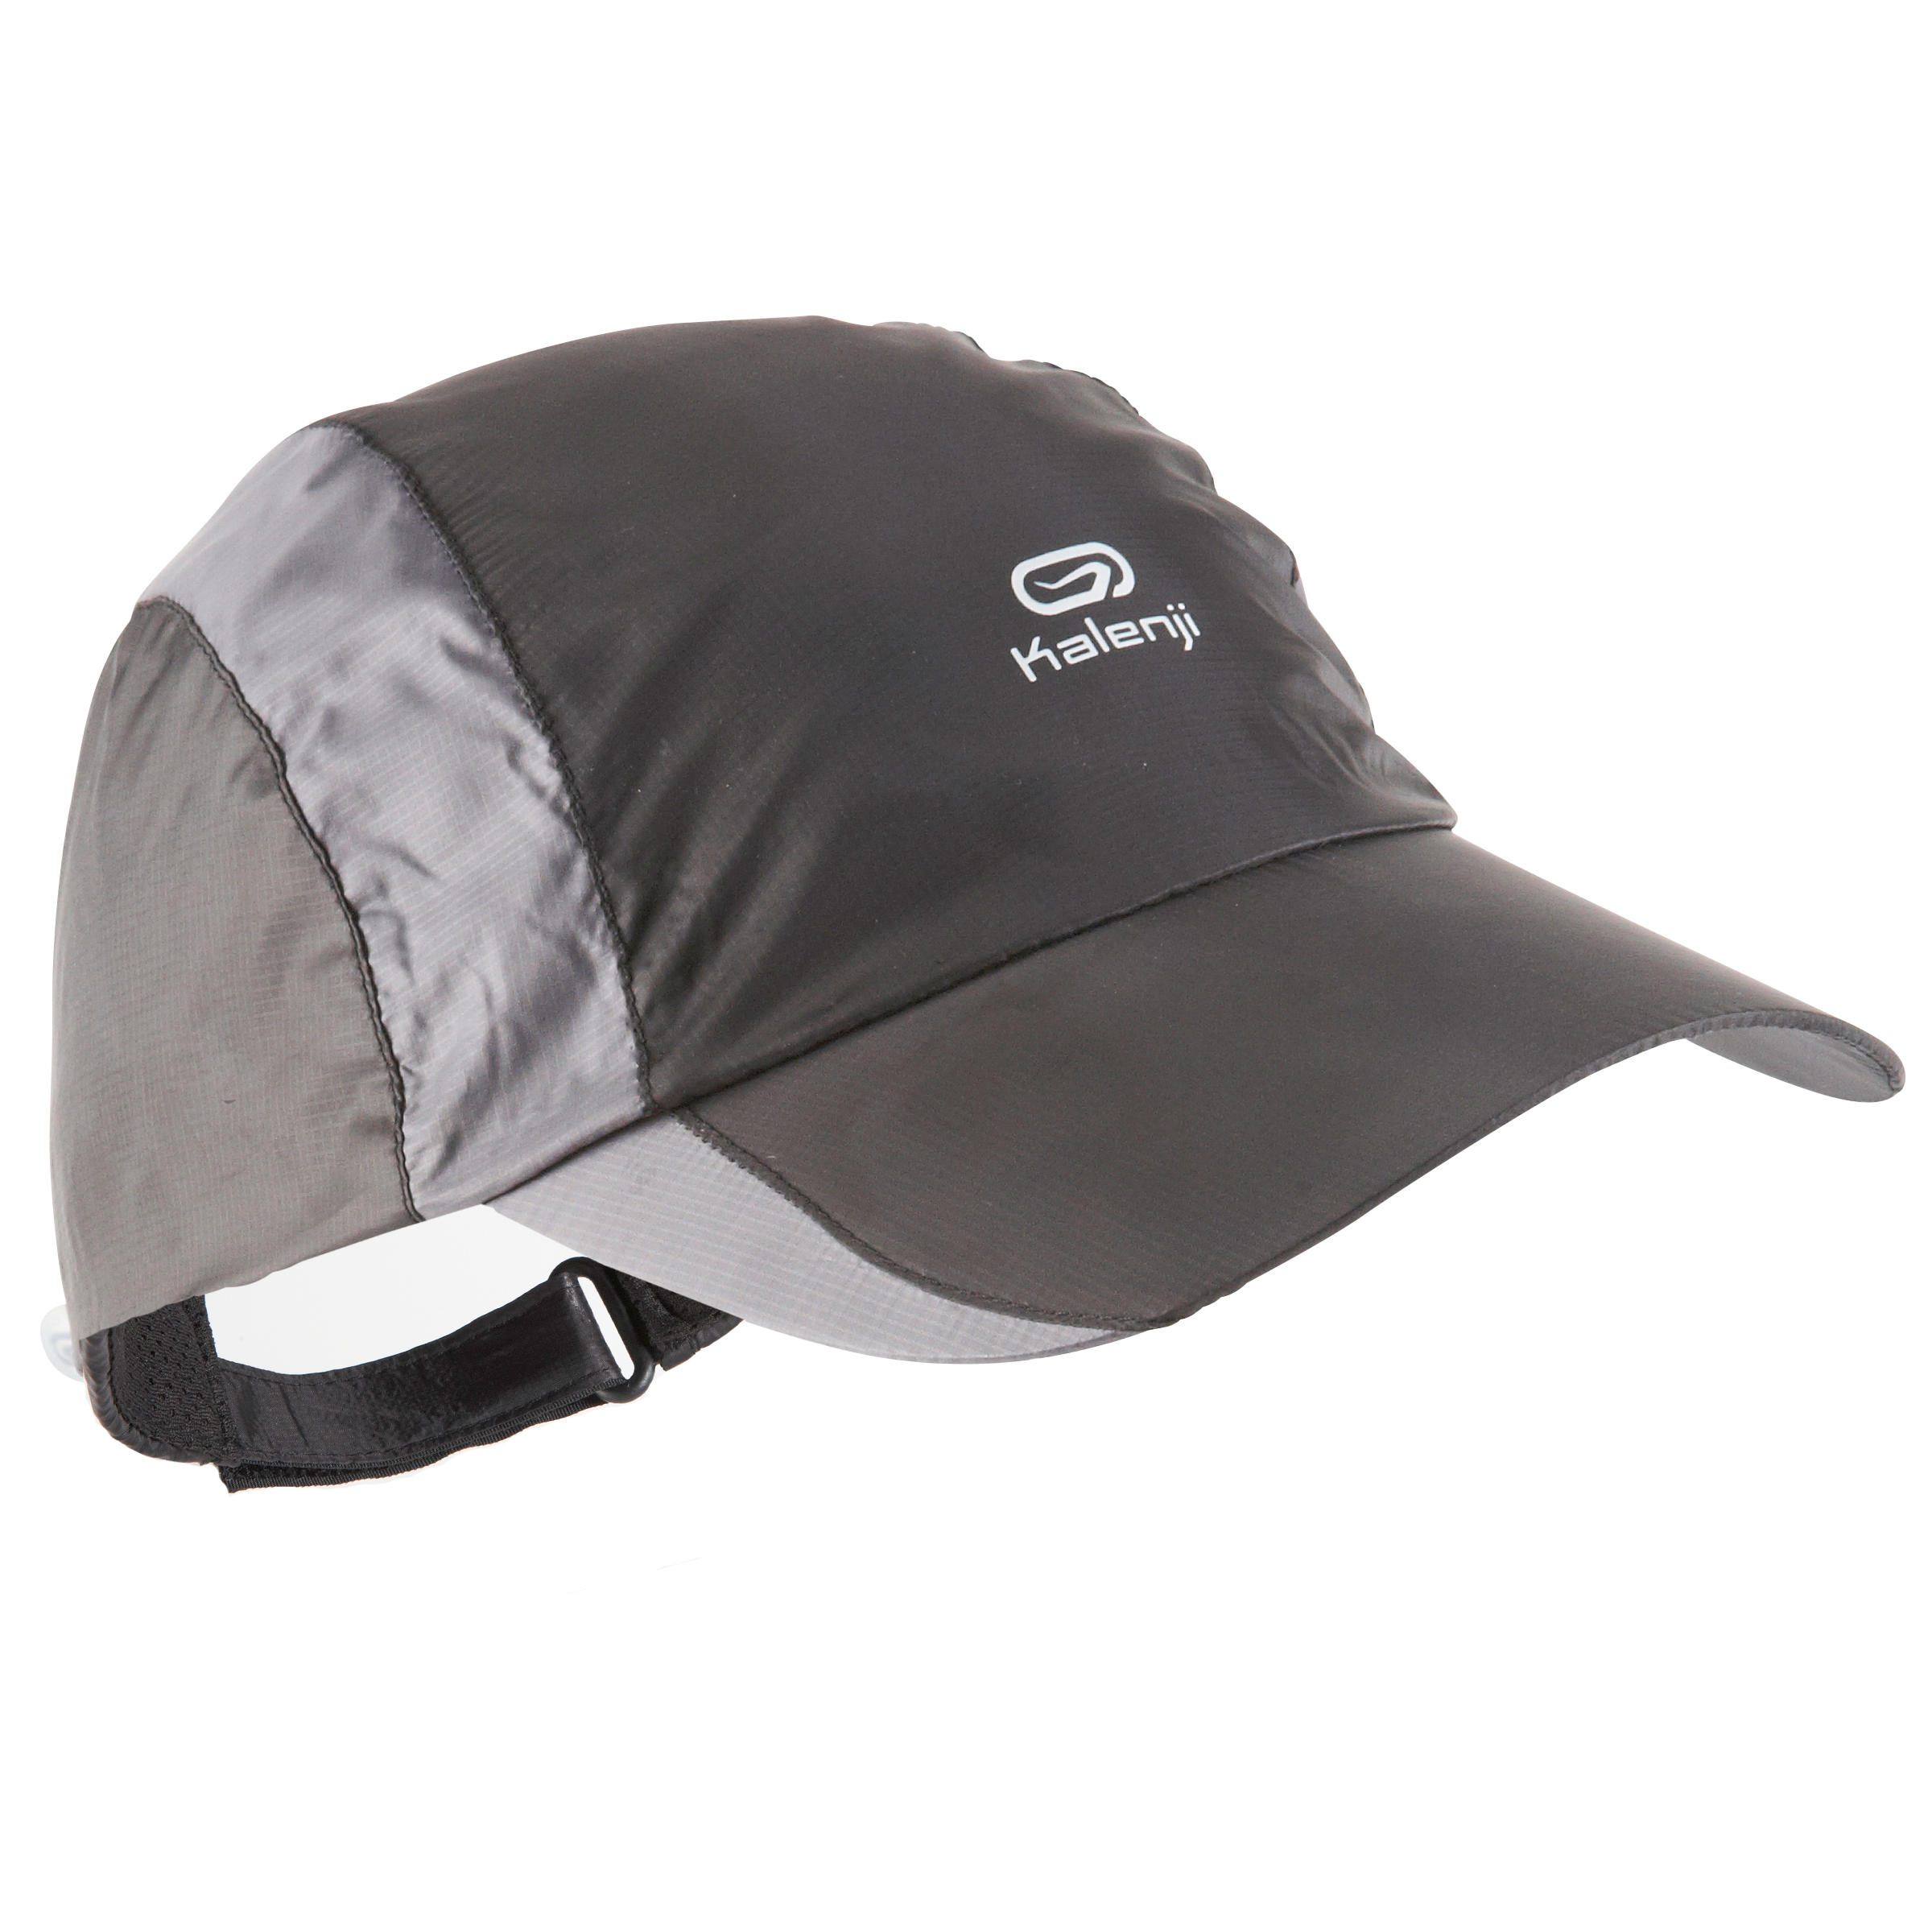 Running Rain Cap - Black